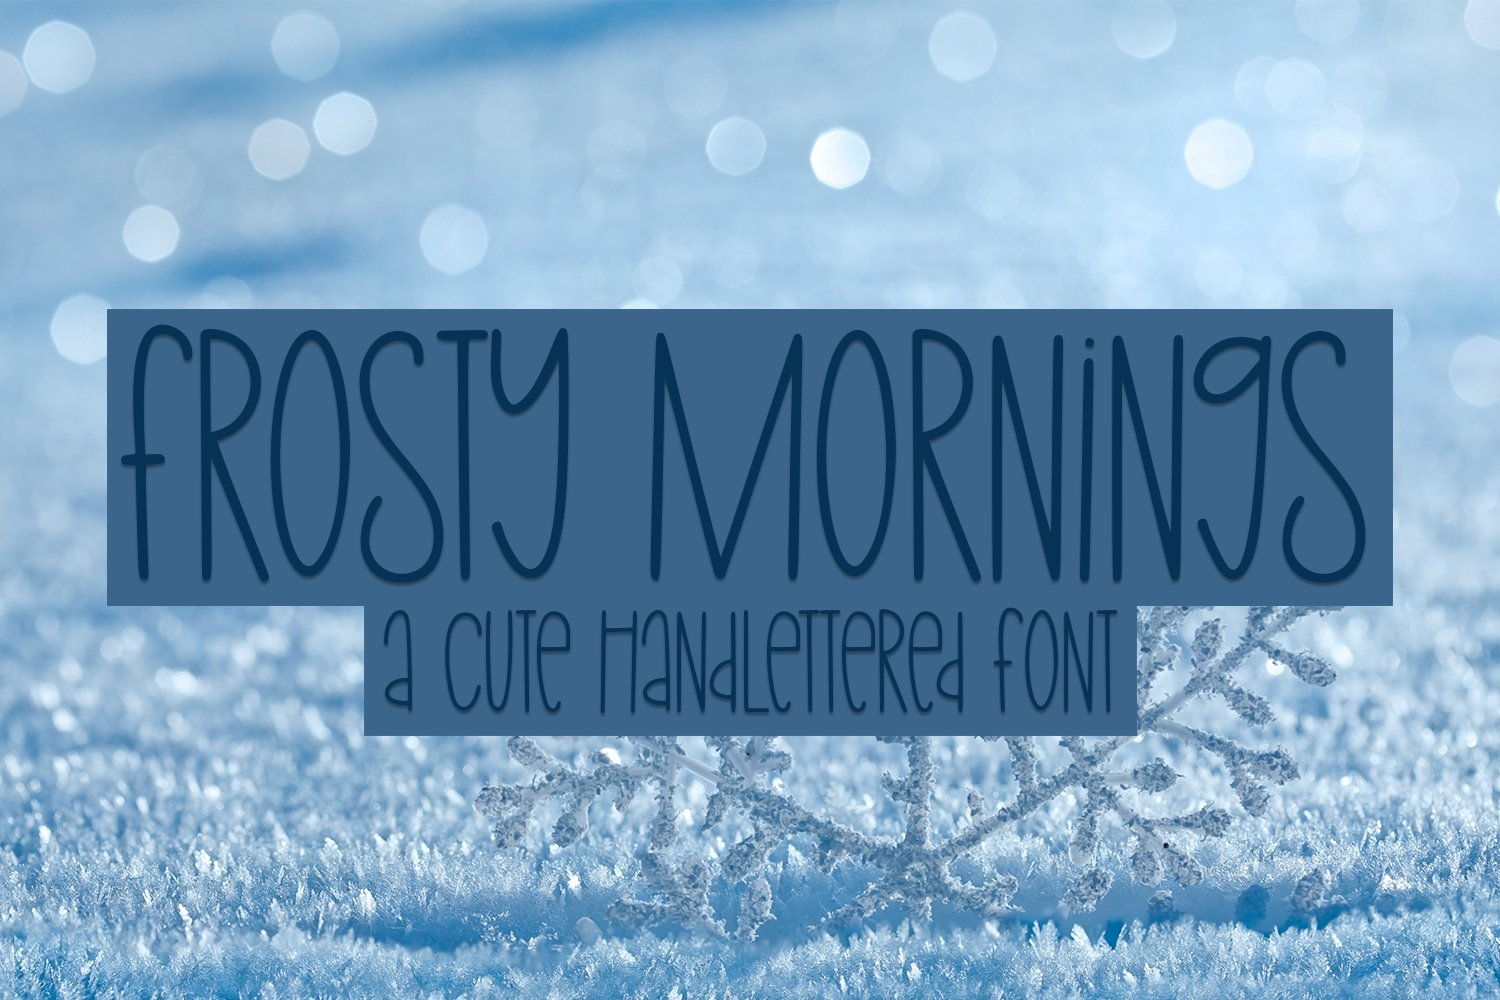 Frosty Mornings - A Cute Hand-Lettered Font example image 3